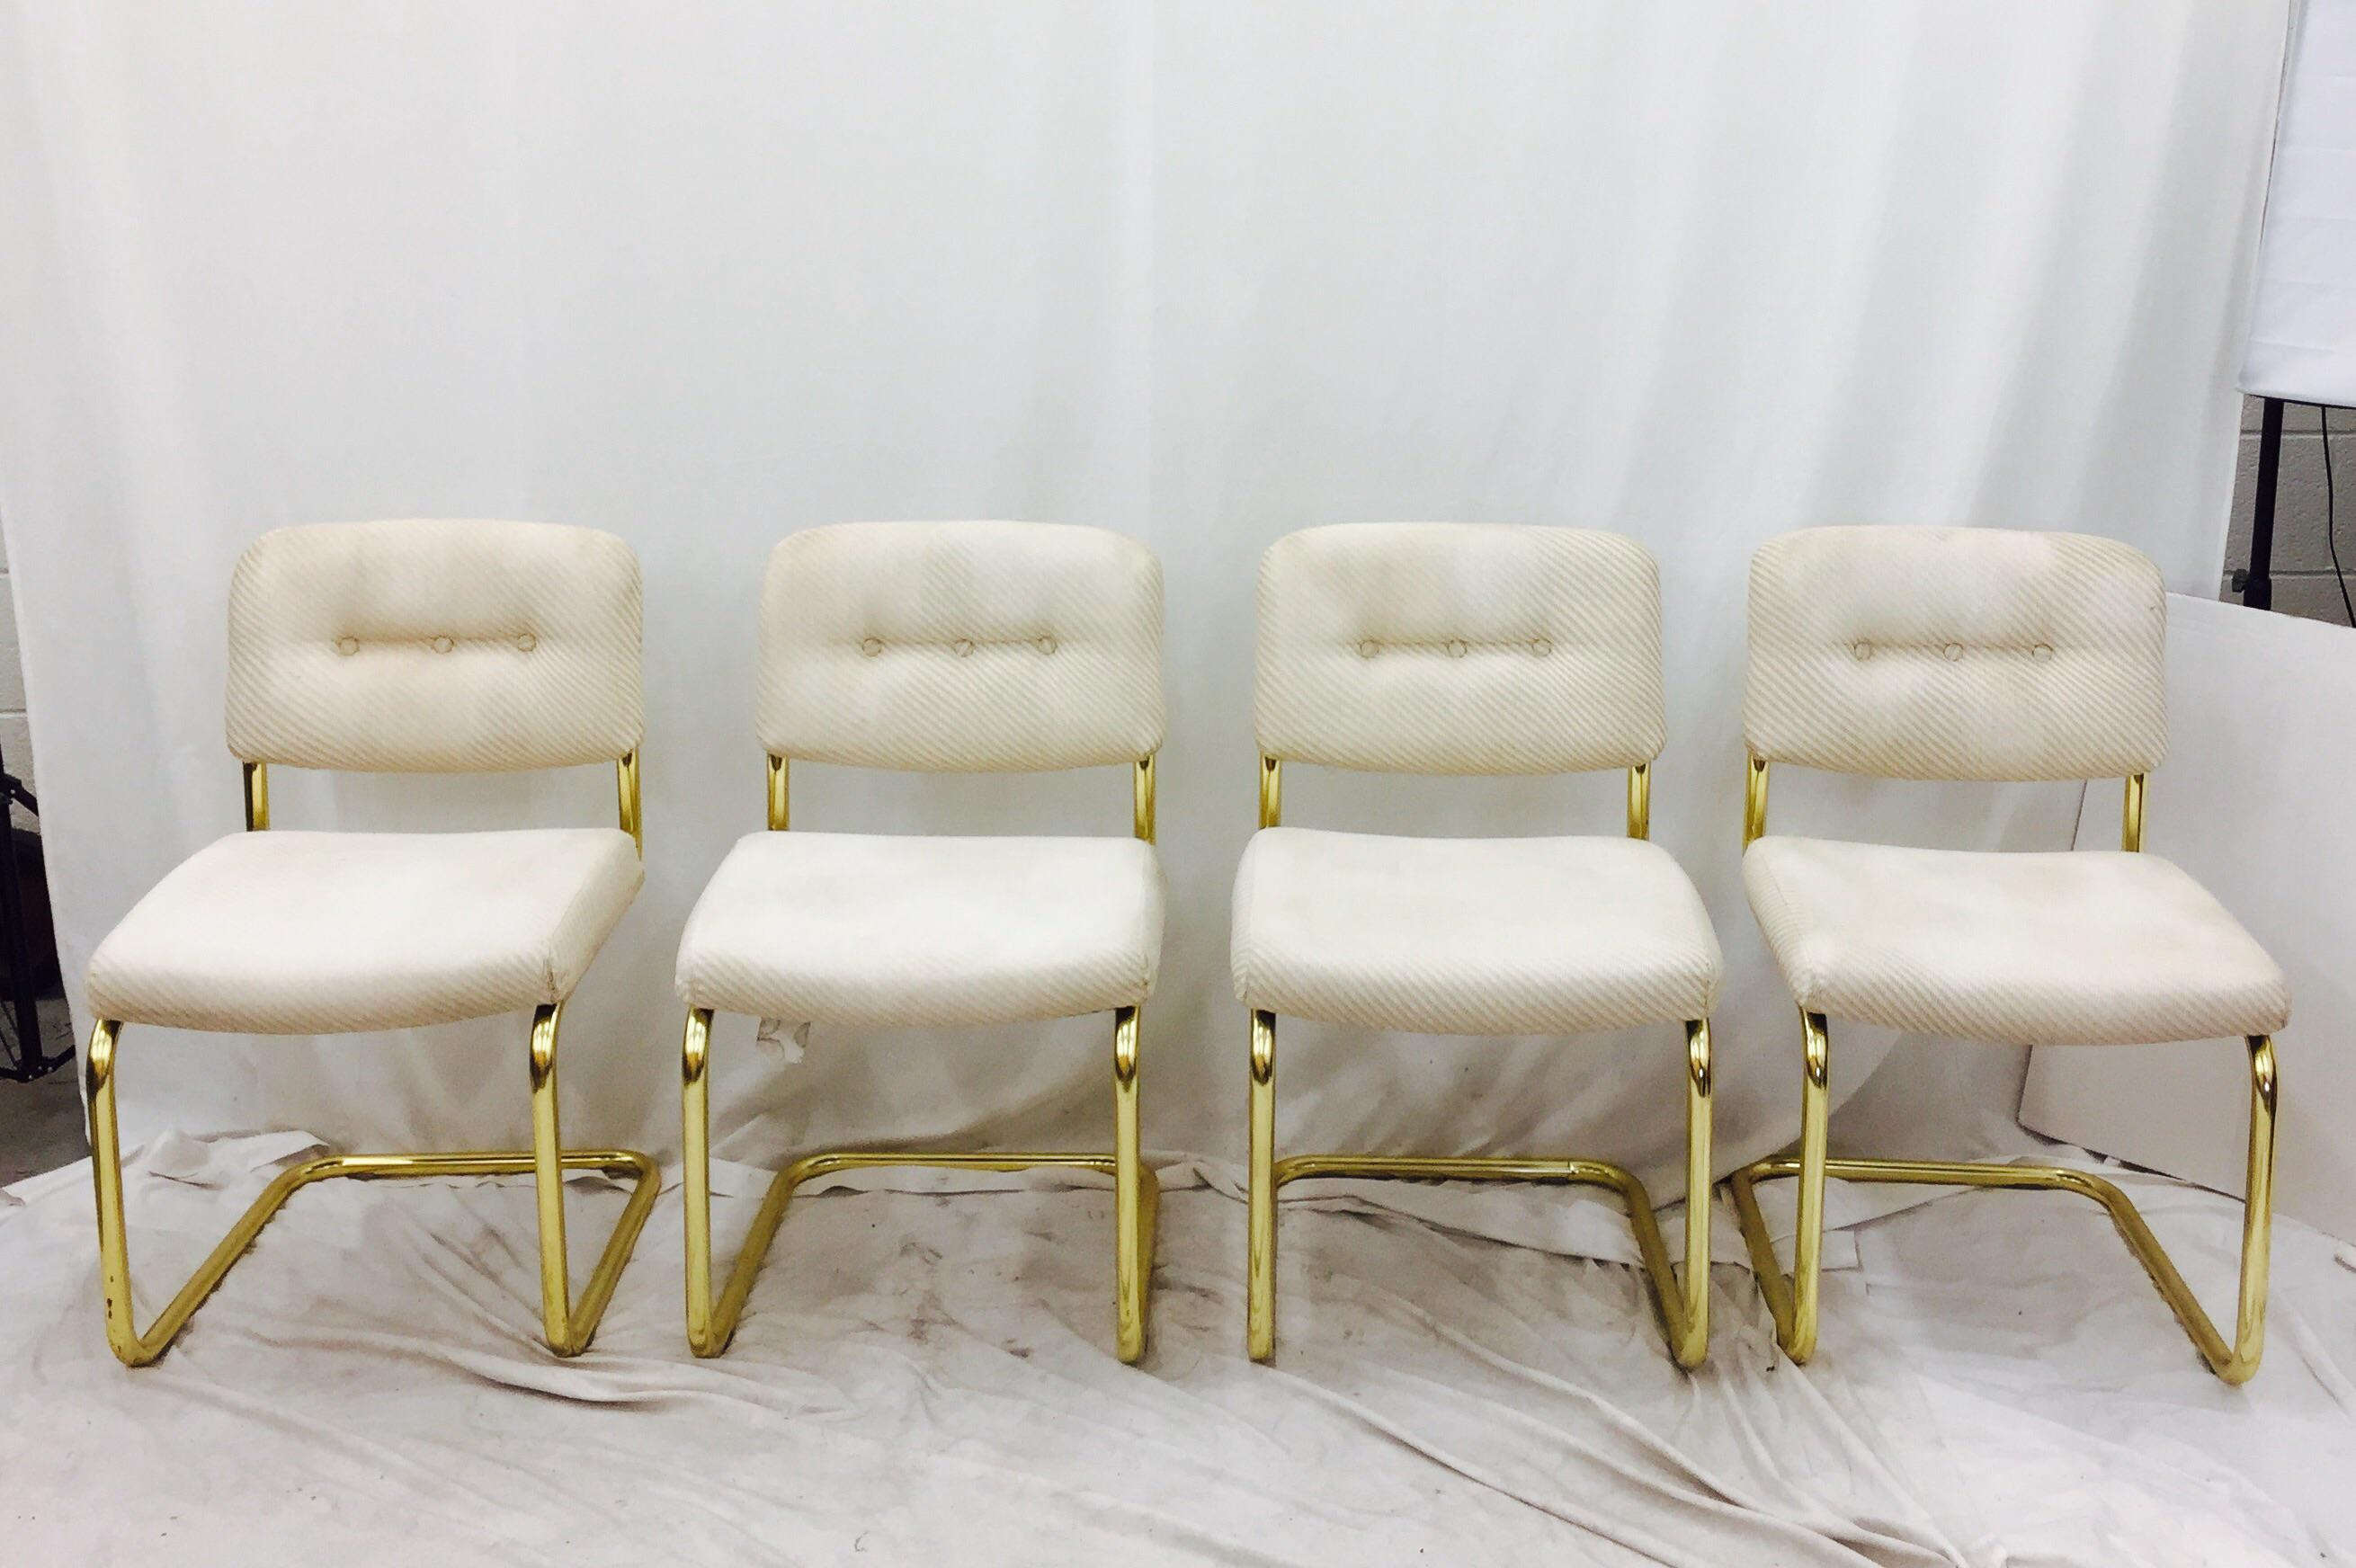 Vintage Lacquered Brass Chrome Craft Dining Chairs   Set Of 4   Image 2 Of 9